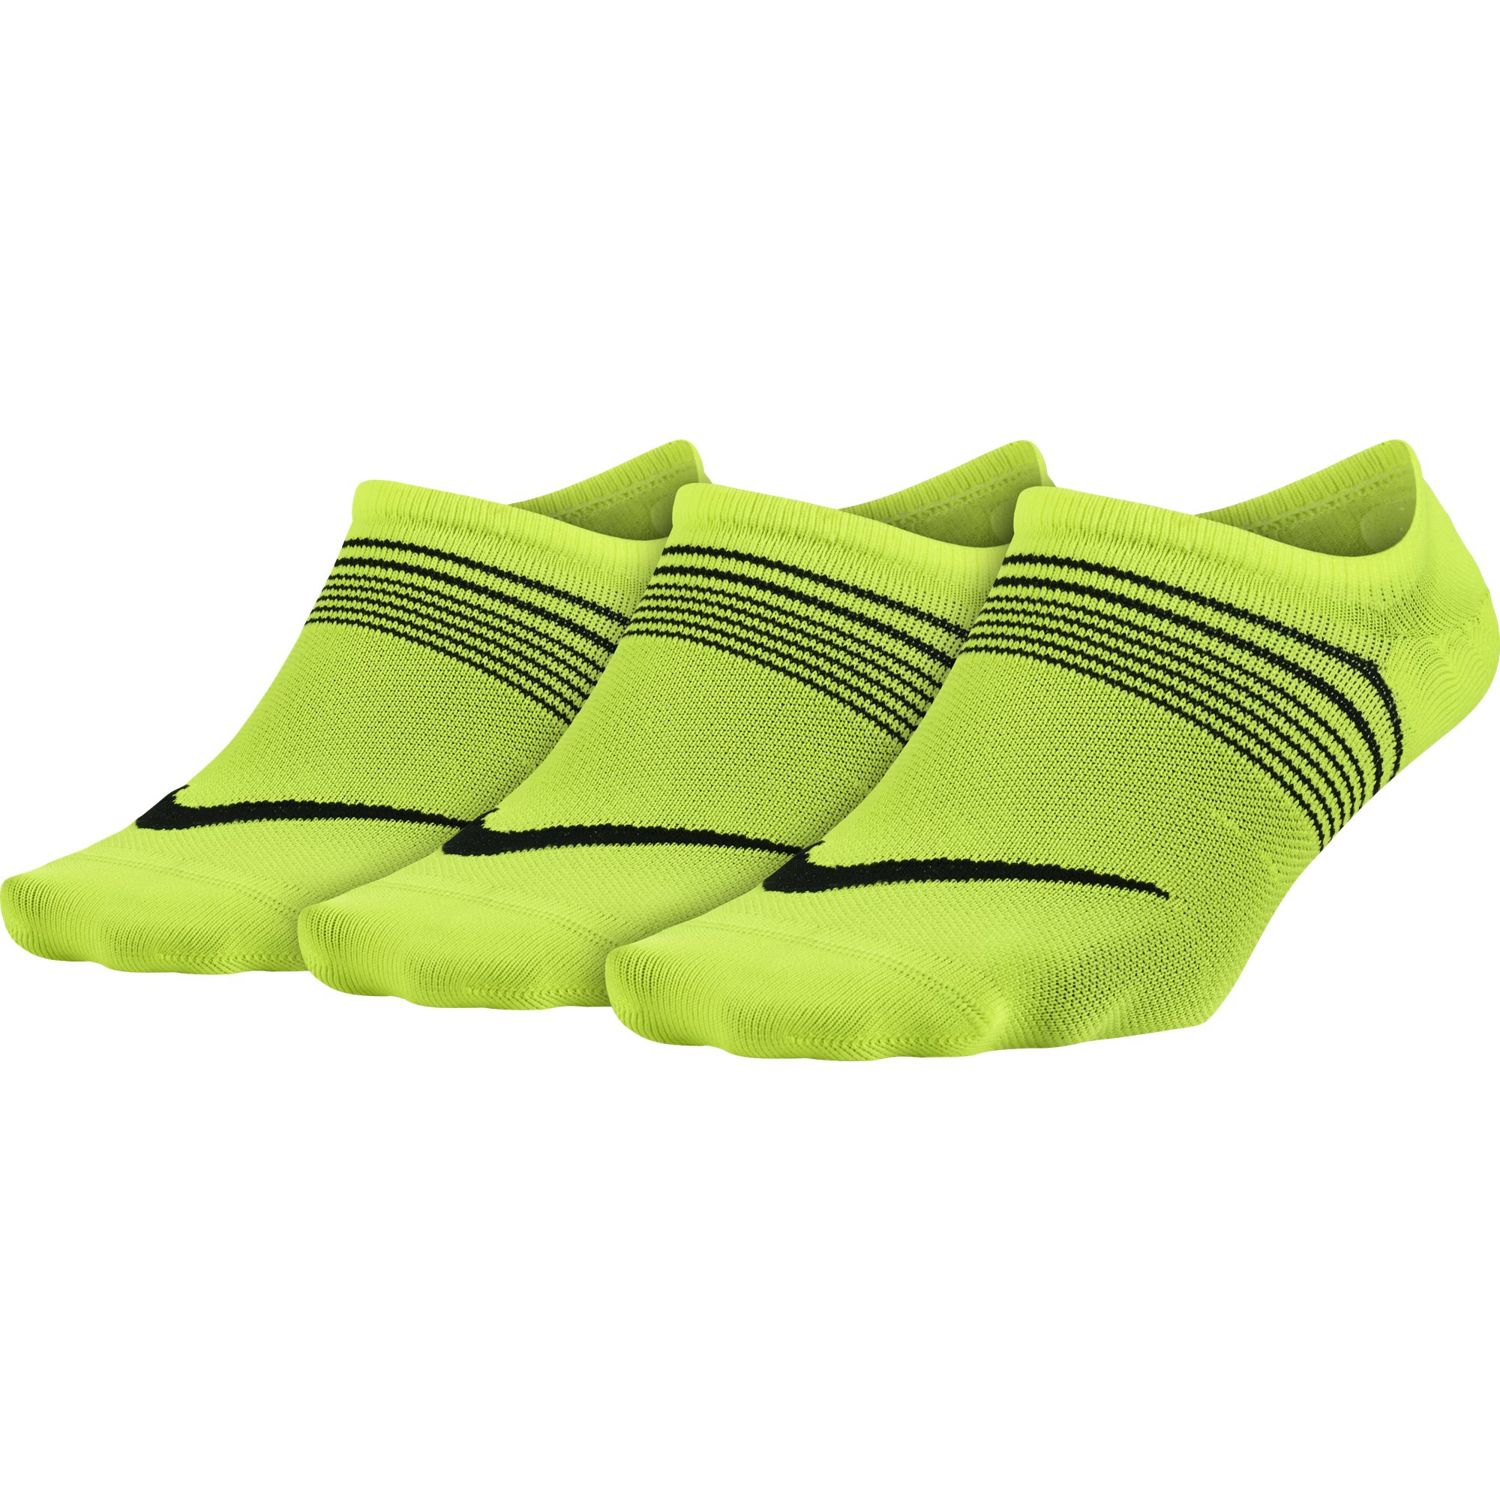 Skarpety Nike Lightweight Training Sock 3pack SX5277 702